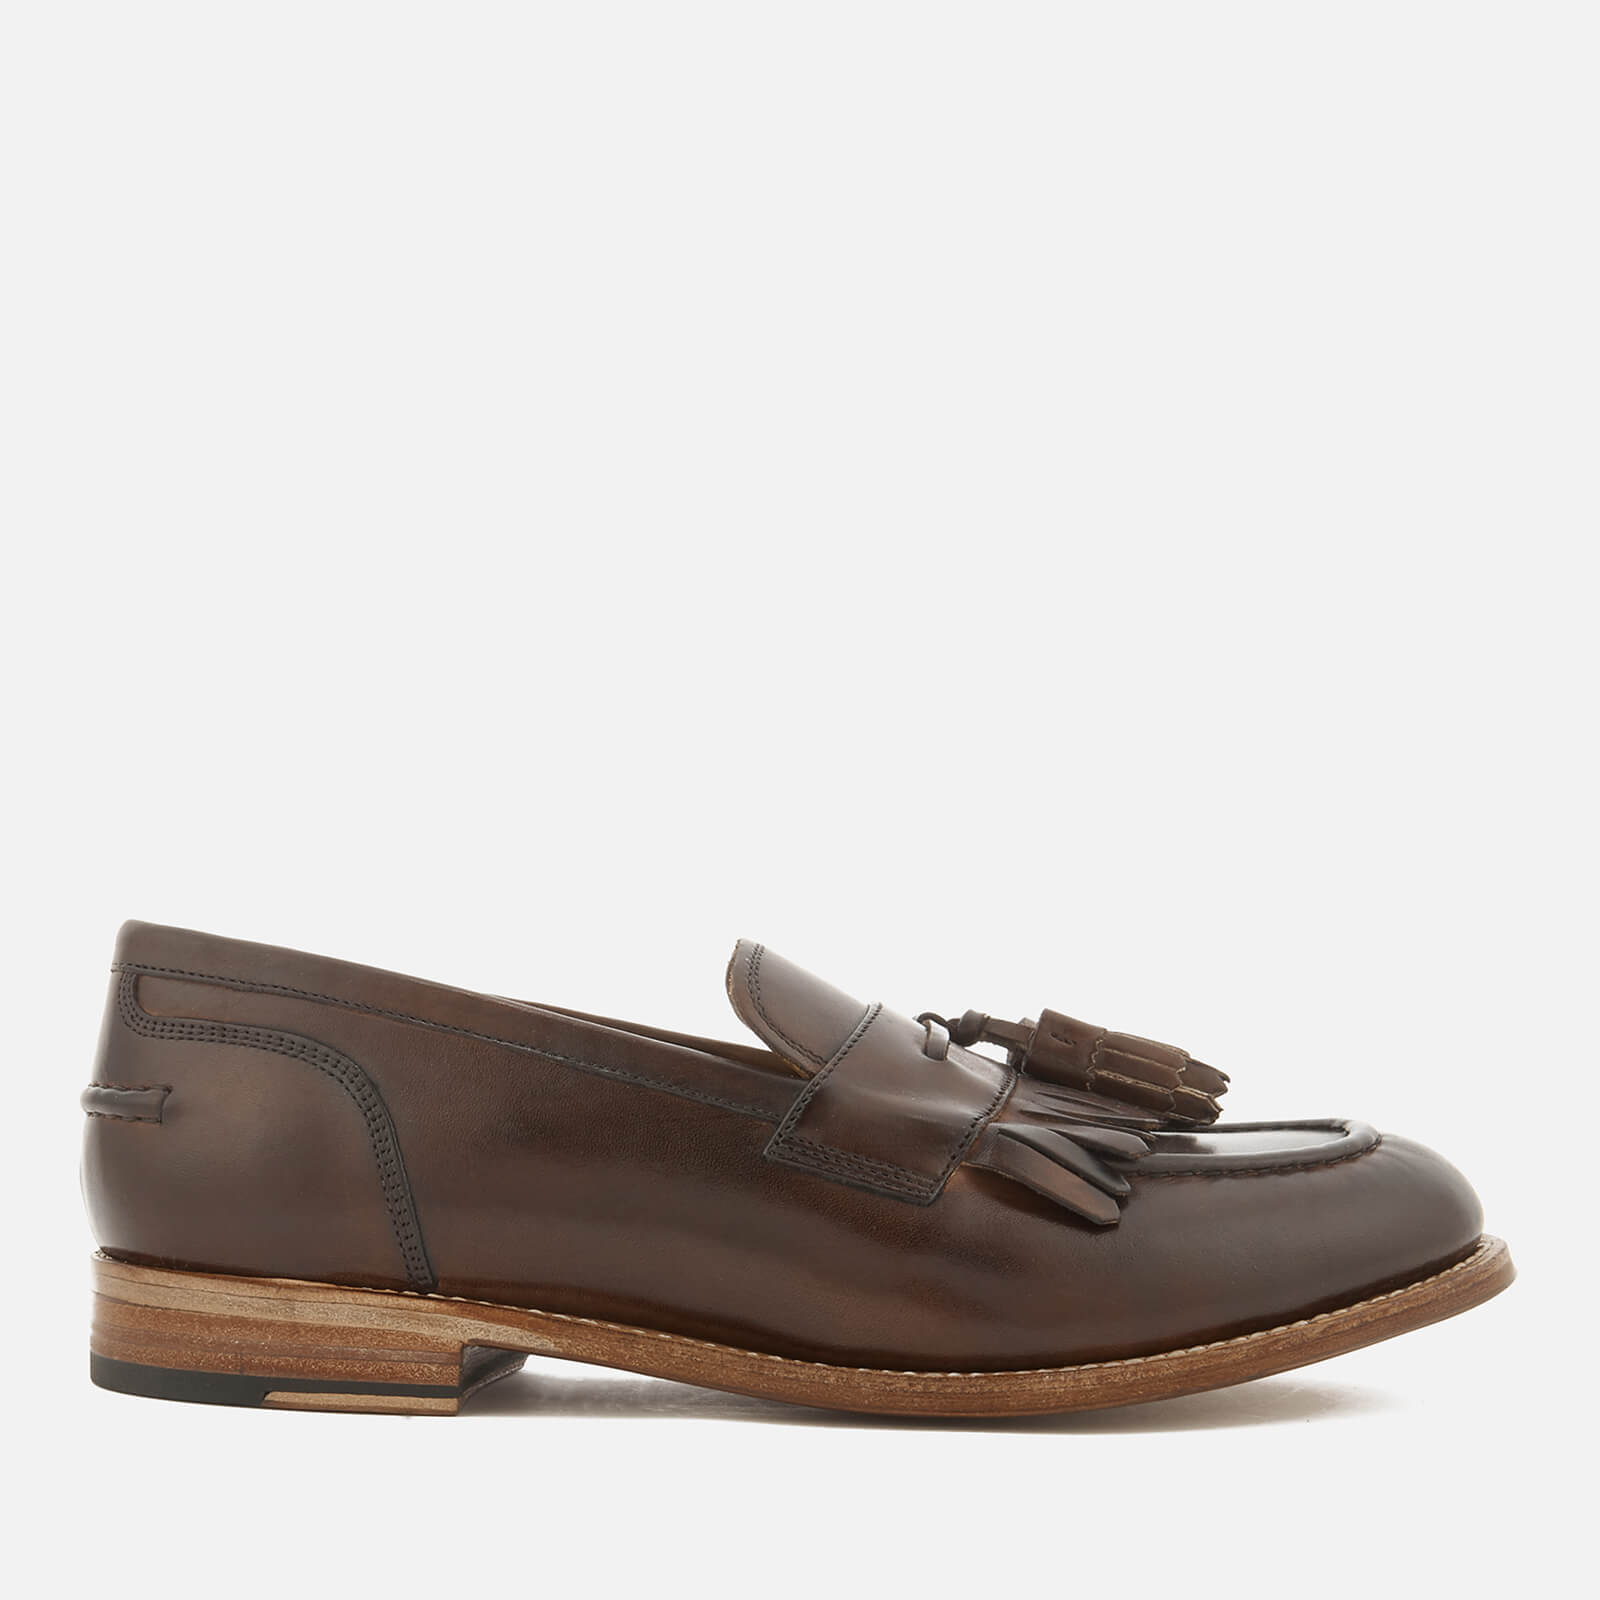 590ddb595a3 Grenson Men s Mackenzie Hand Painted Leather Tassel Loafers - Dark Brown -  Free UK Delivery over £50